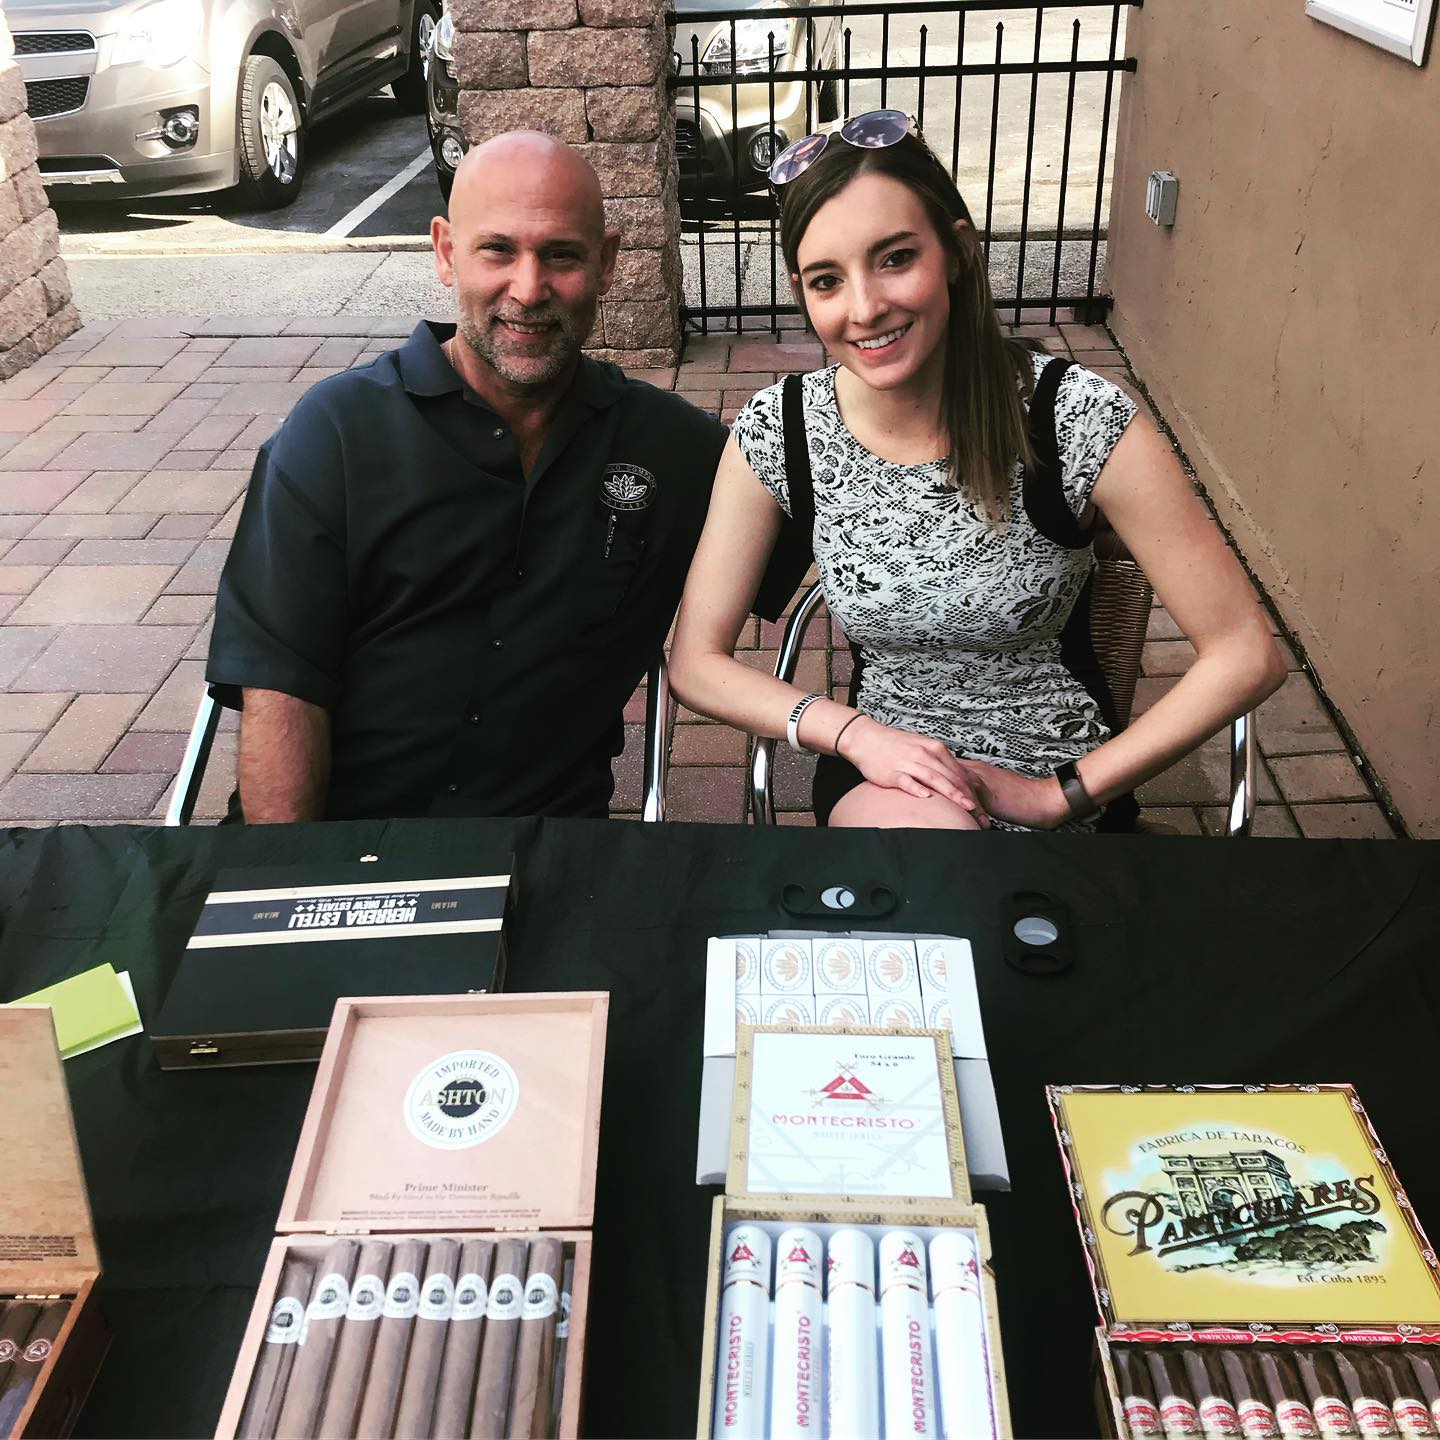 Cigars at The Sierra Madre.jpg